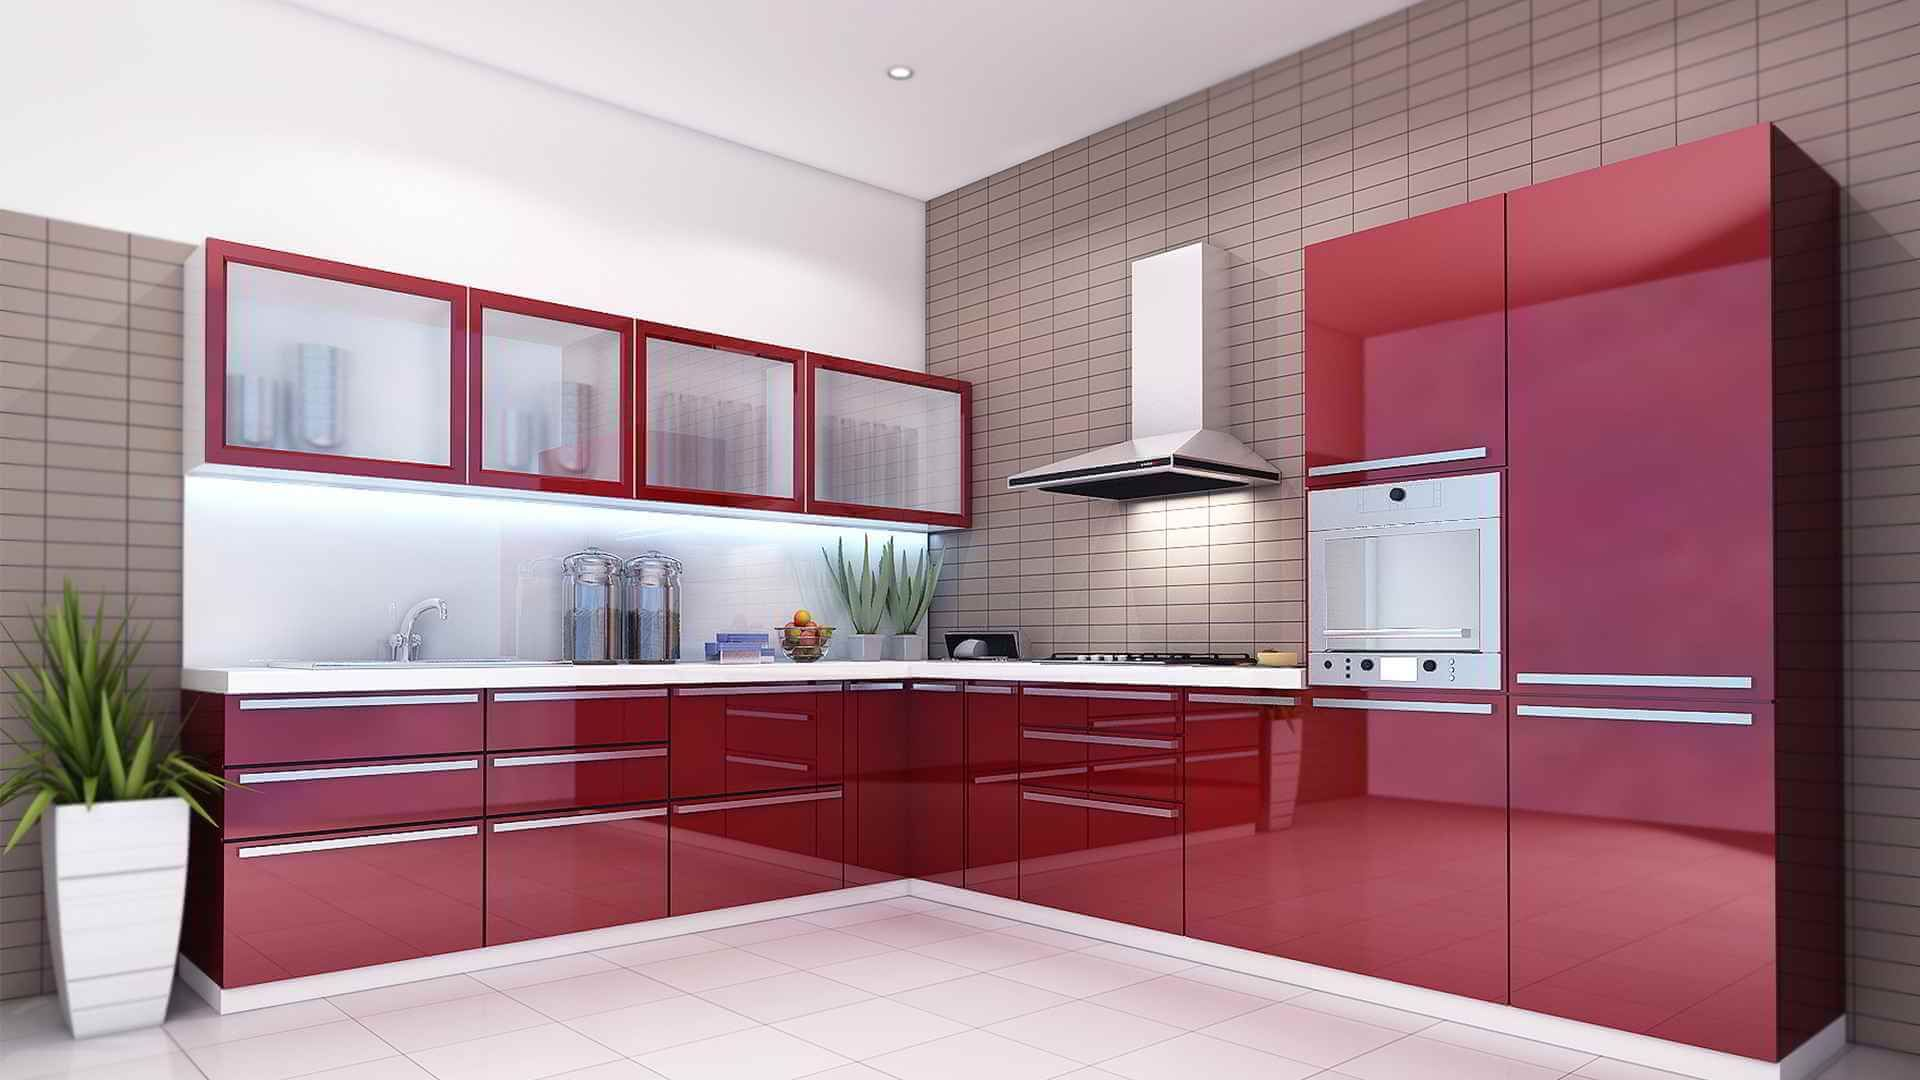 As Time Has Gone On Anything To Do With Italian Kitchens Has Become Far More Diverse Homeland 18b Homeland Mall 3 Dapur Idaman Dapur Modern Kabinet Dapur